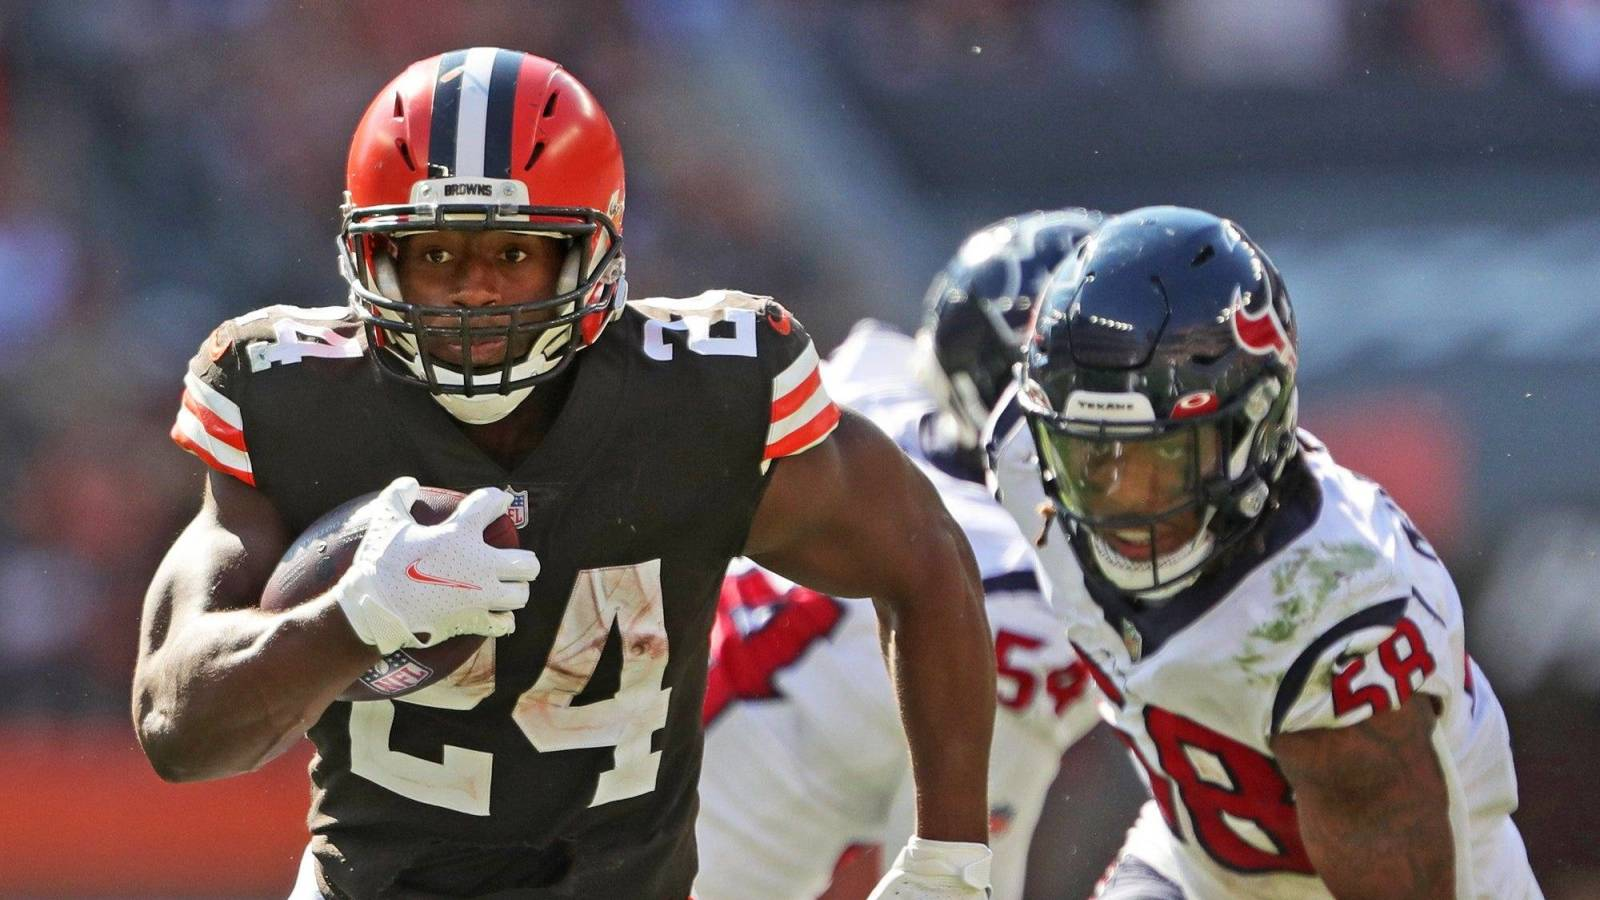 Browns RB Nick Chubb to miss Cardinals game due to calf injury